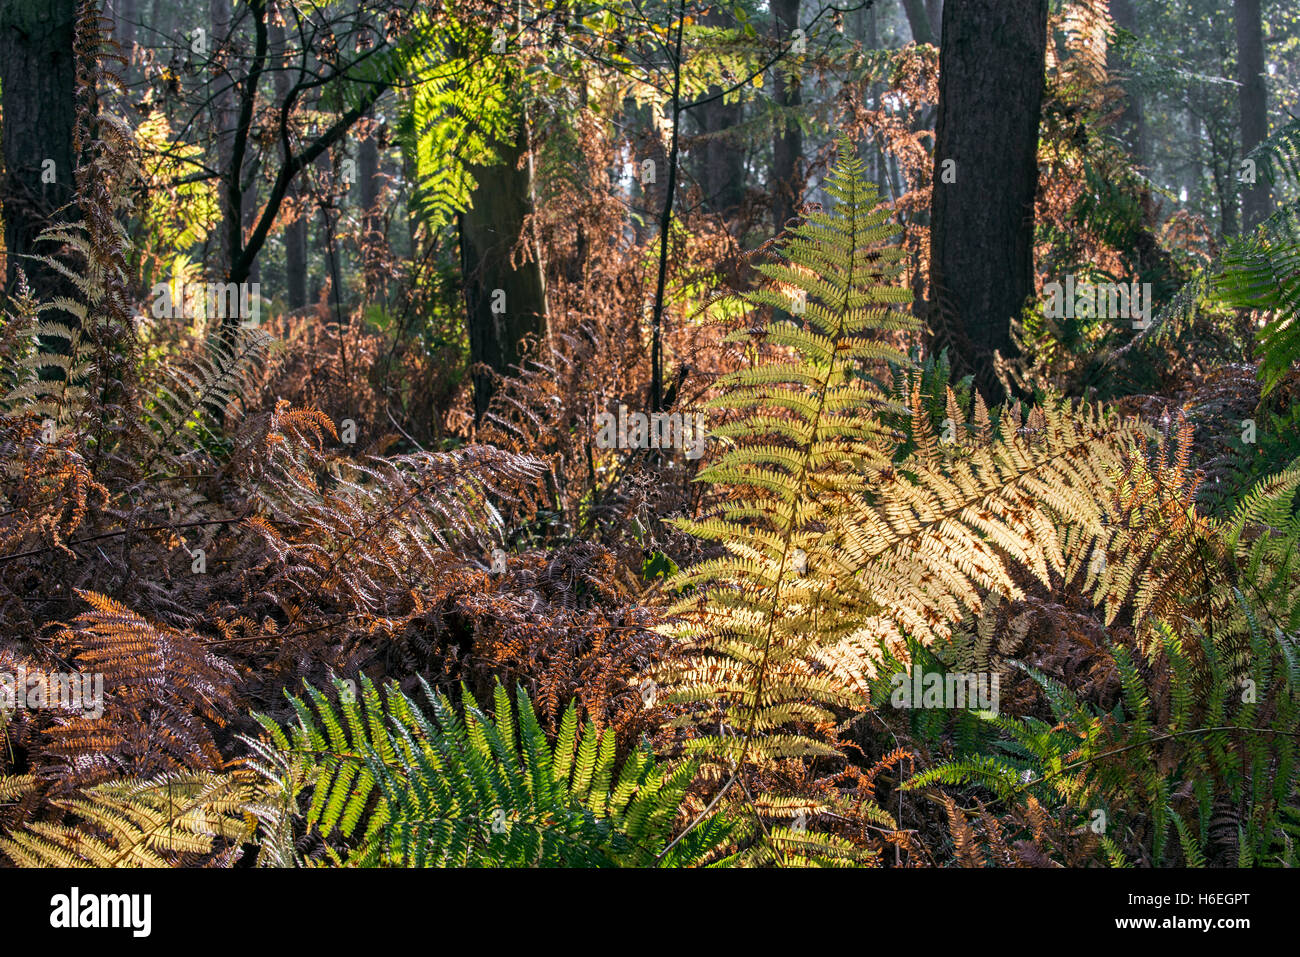 Bracken / eagle fern fronds (Pteridium aquilinum) in autumn colours in forest - Stock Image